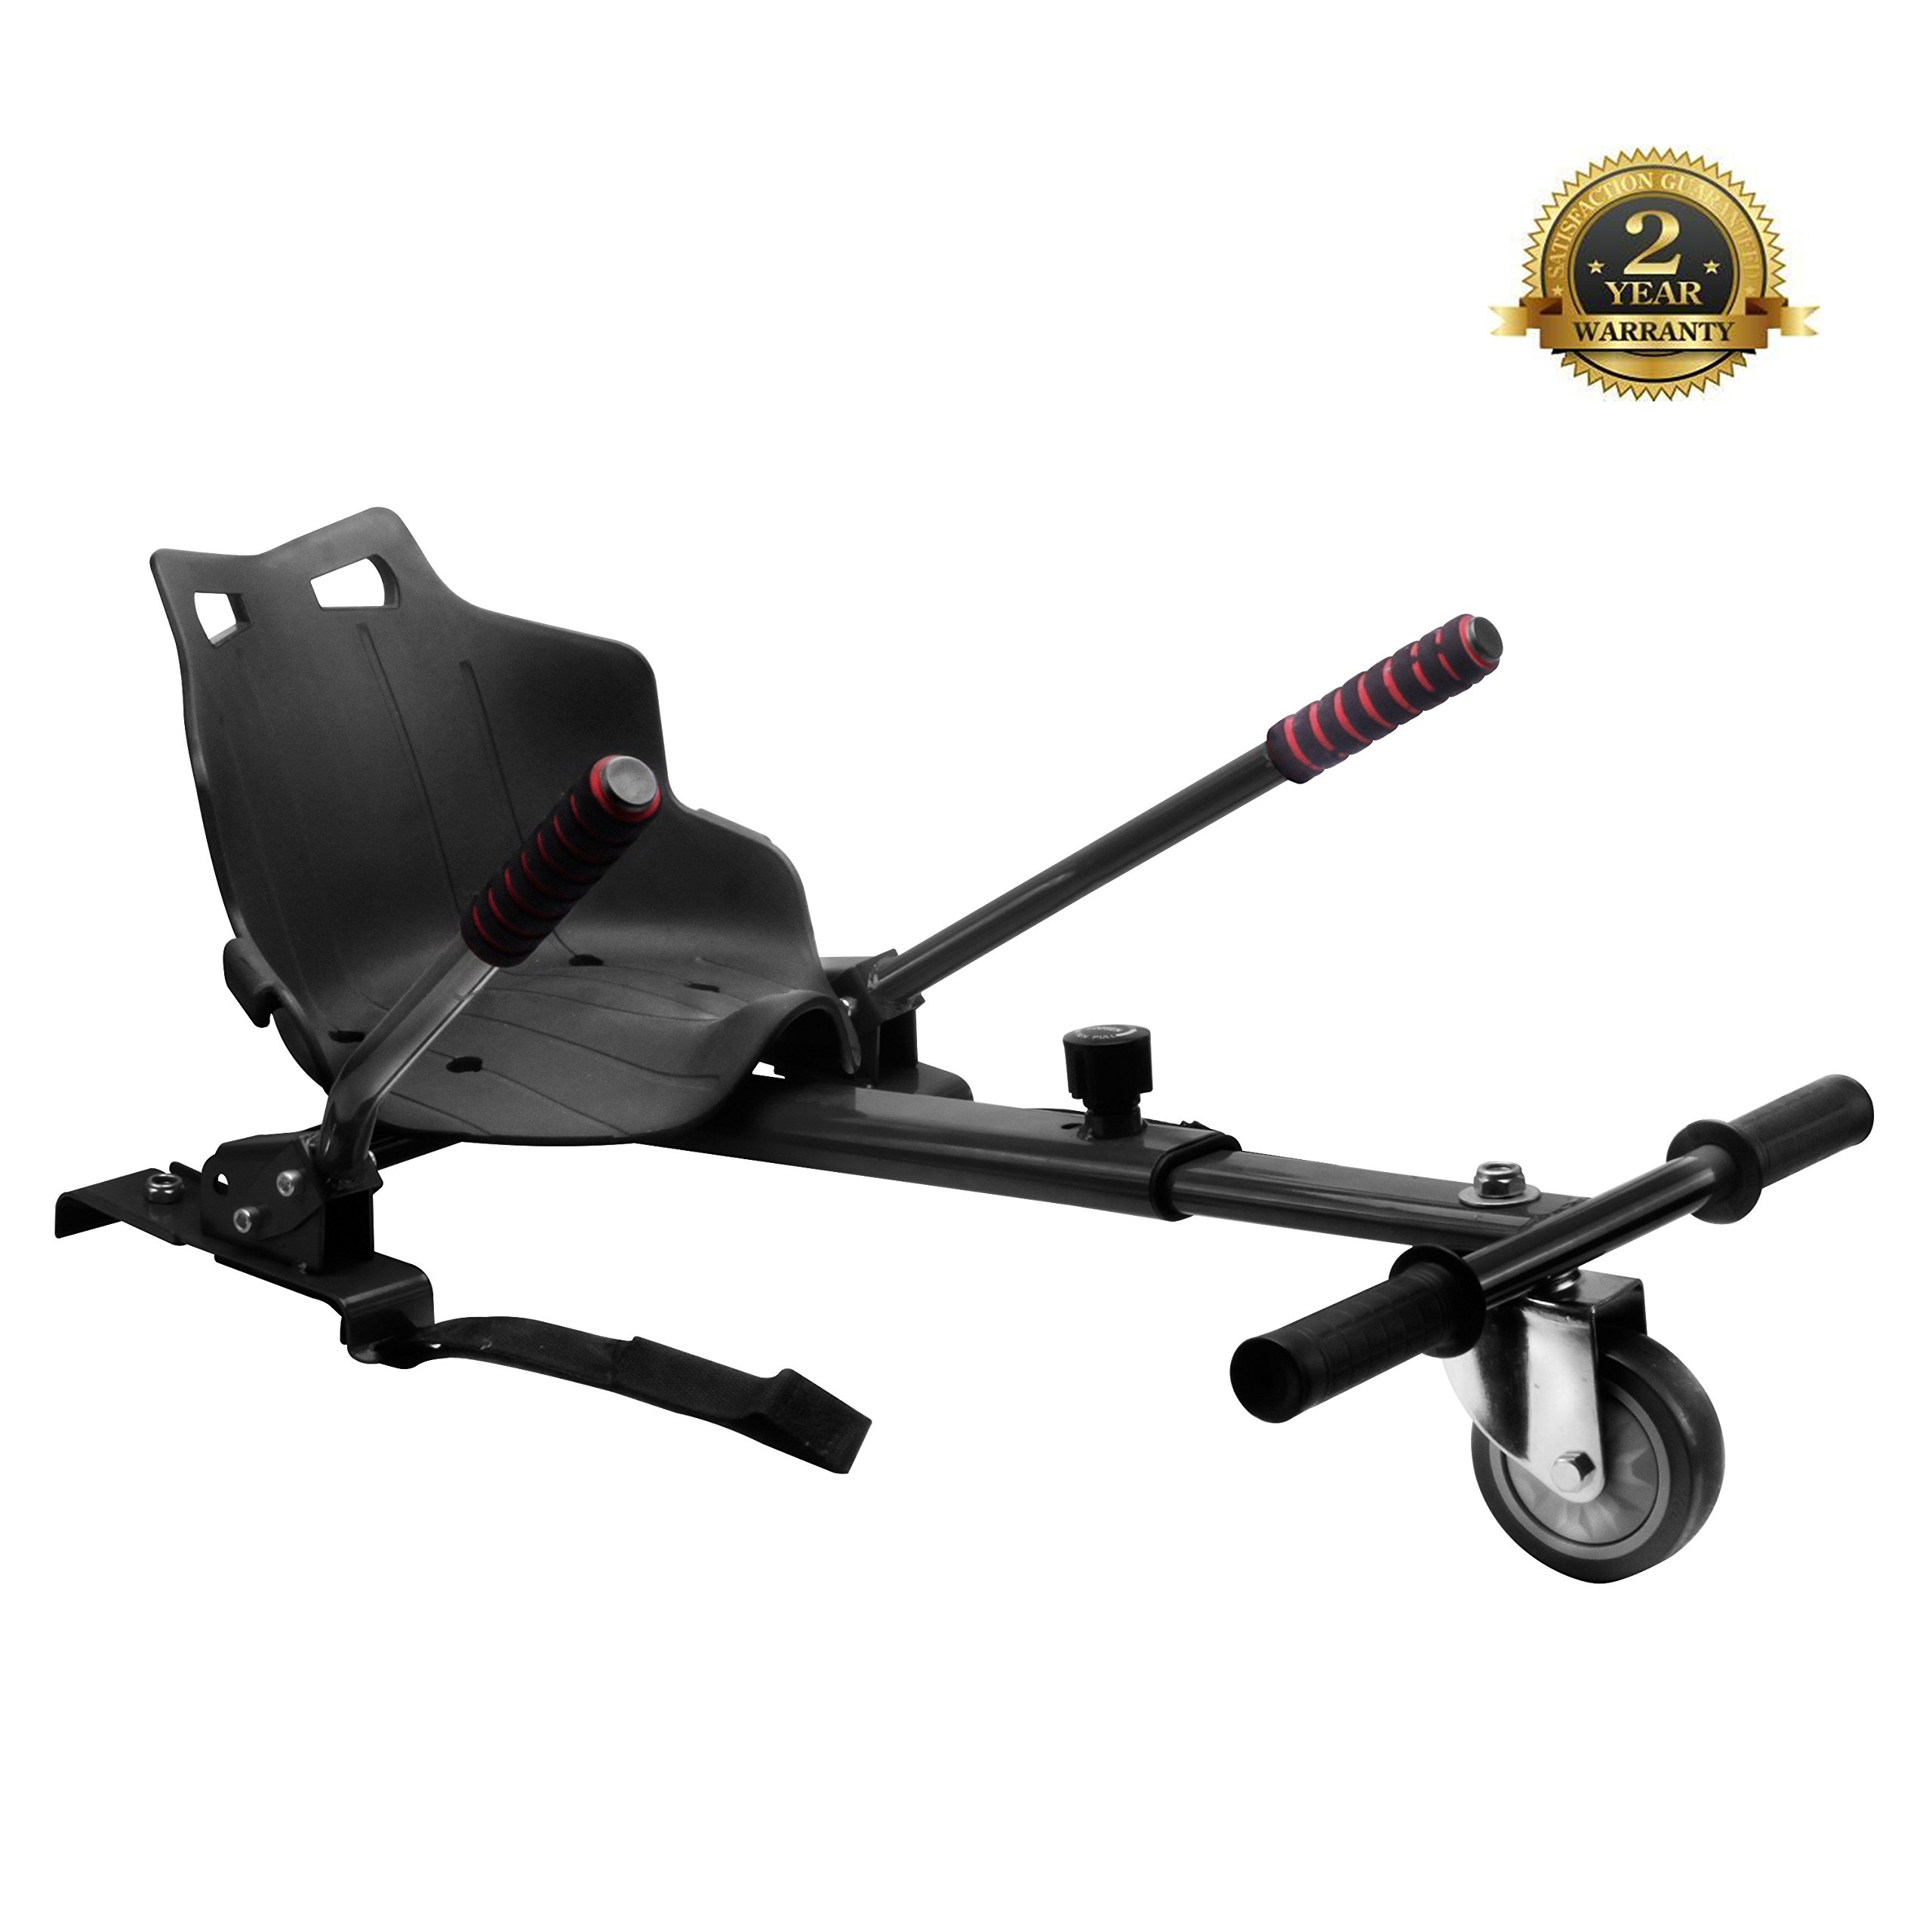 Go Kart for Hoverboards-Adjustable - All Heights - All Ages - Self Balancing Scooter - Compatible with All Hoverboards - HoverBoard not included (black)